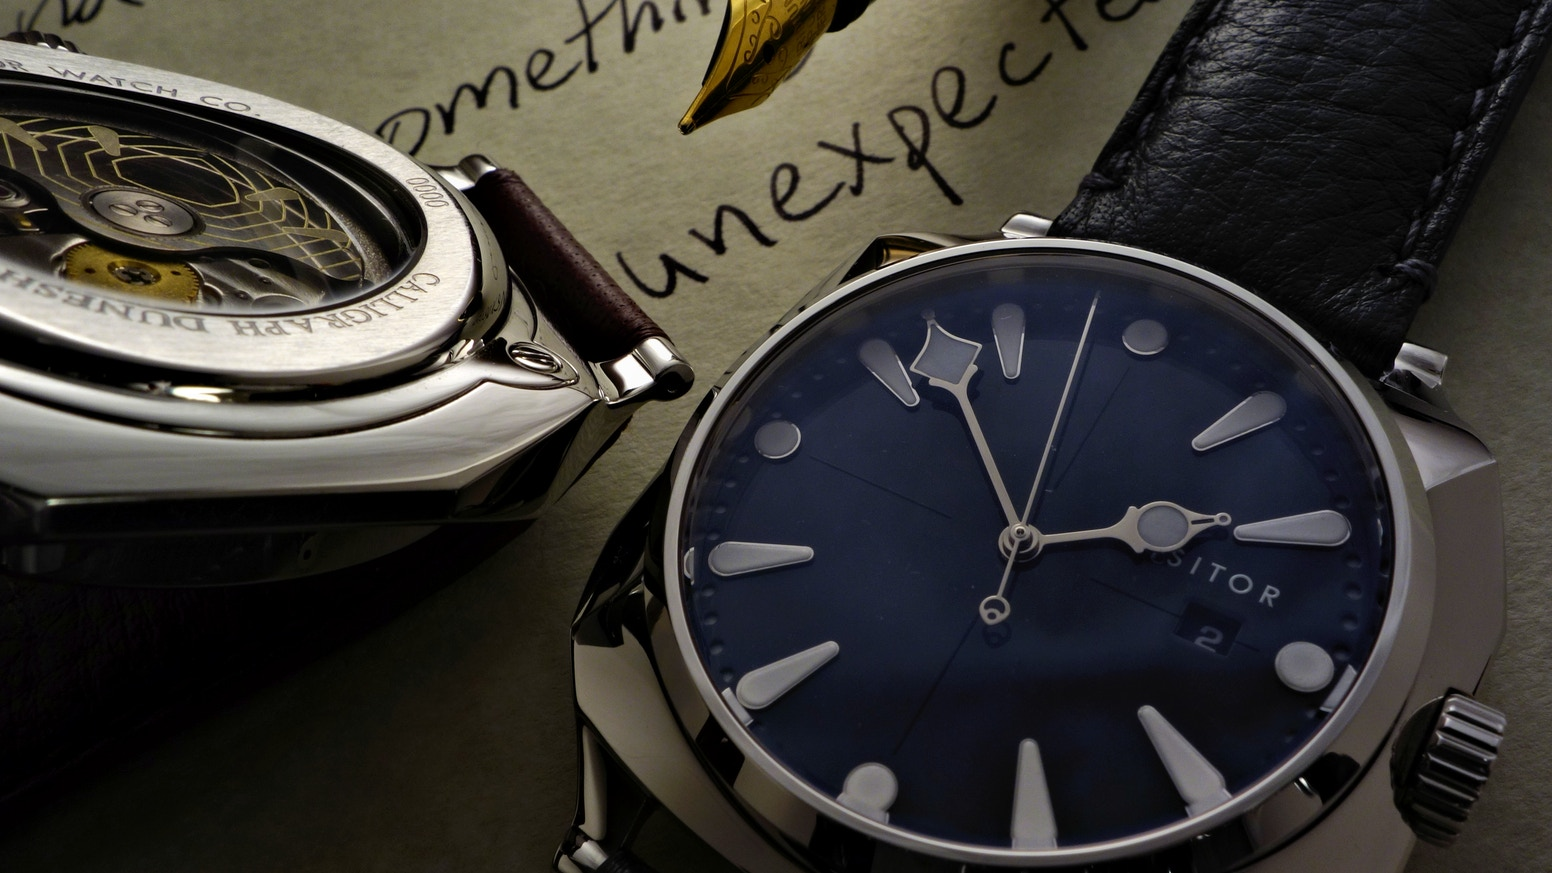 A mechanical watch of original and unexpected design, inspired by sand dunes, sculpture, and the beauty of calligraphy.